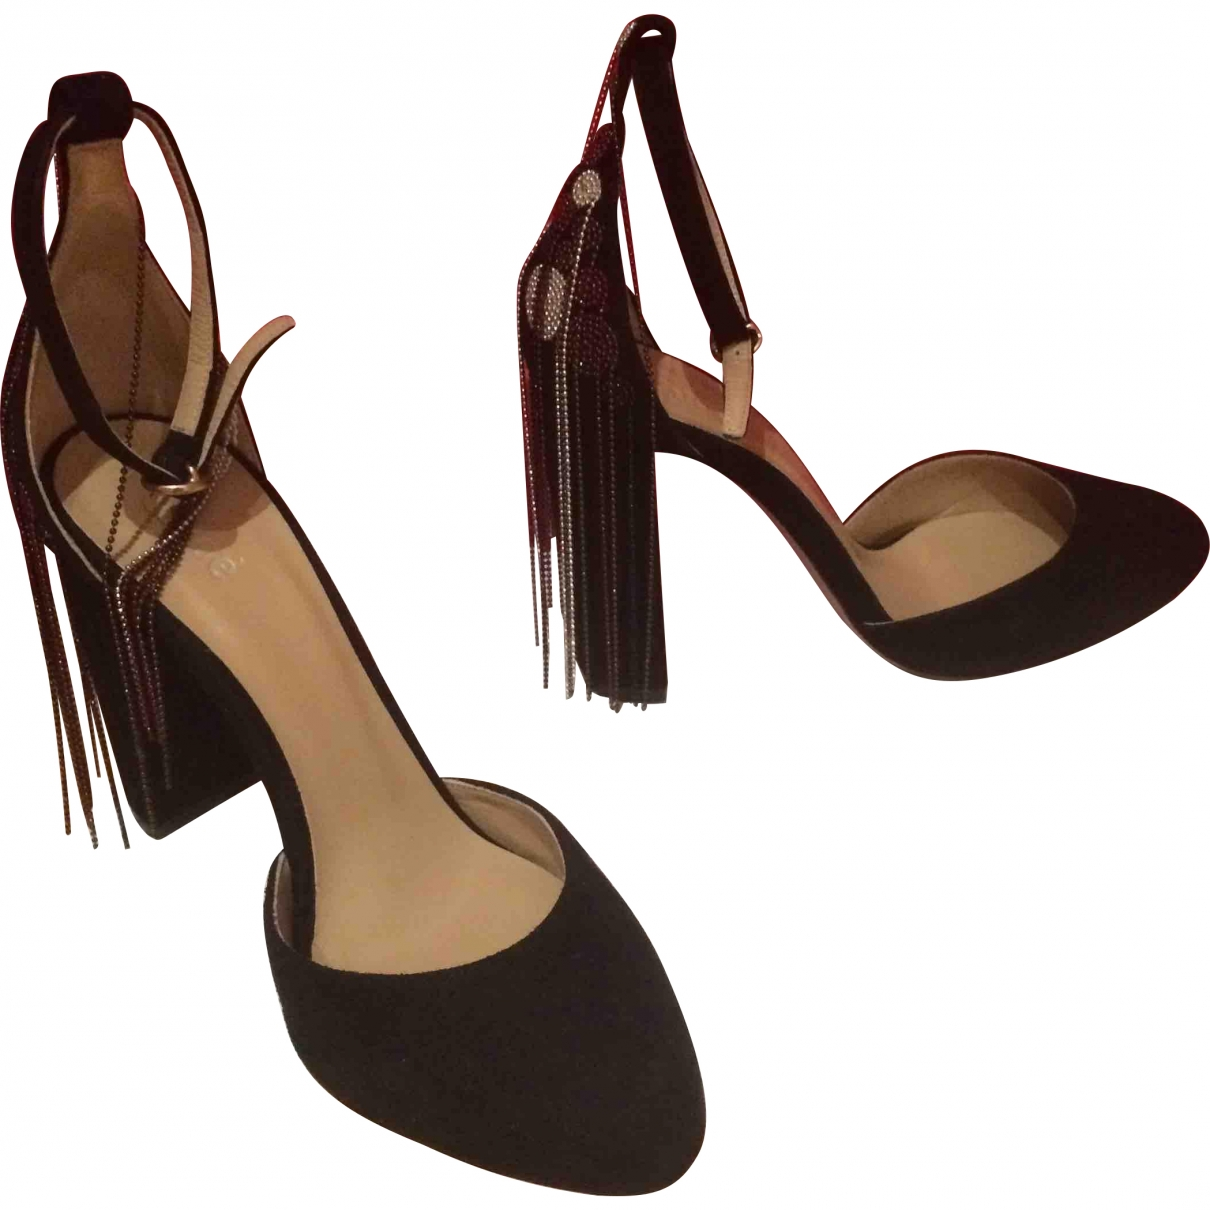 Chloé \N Black Suede Heels for Women 35.5 EU